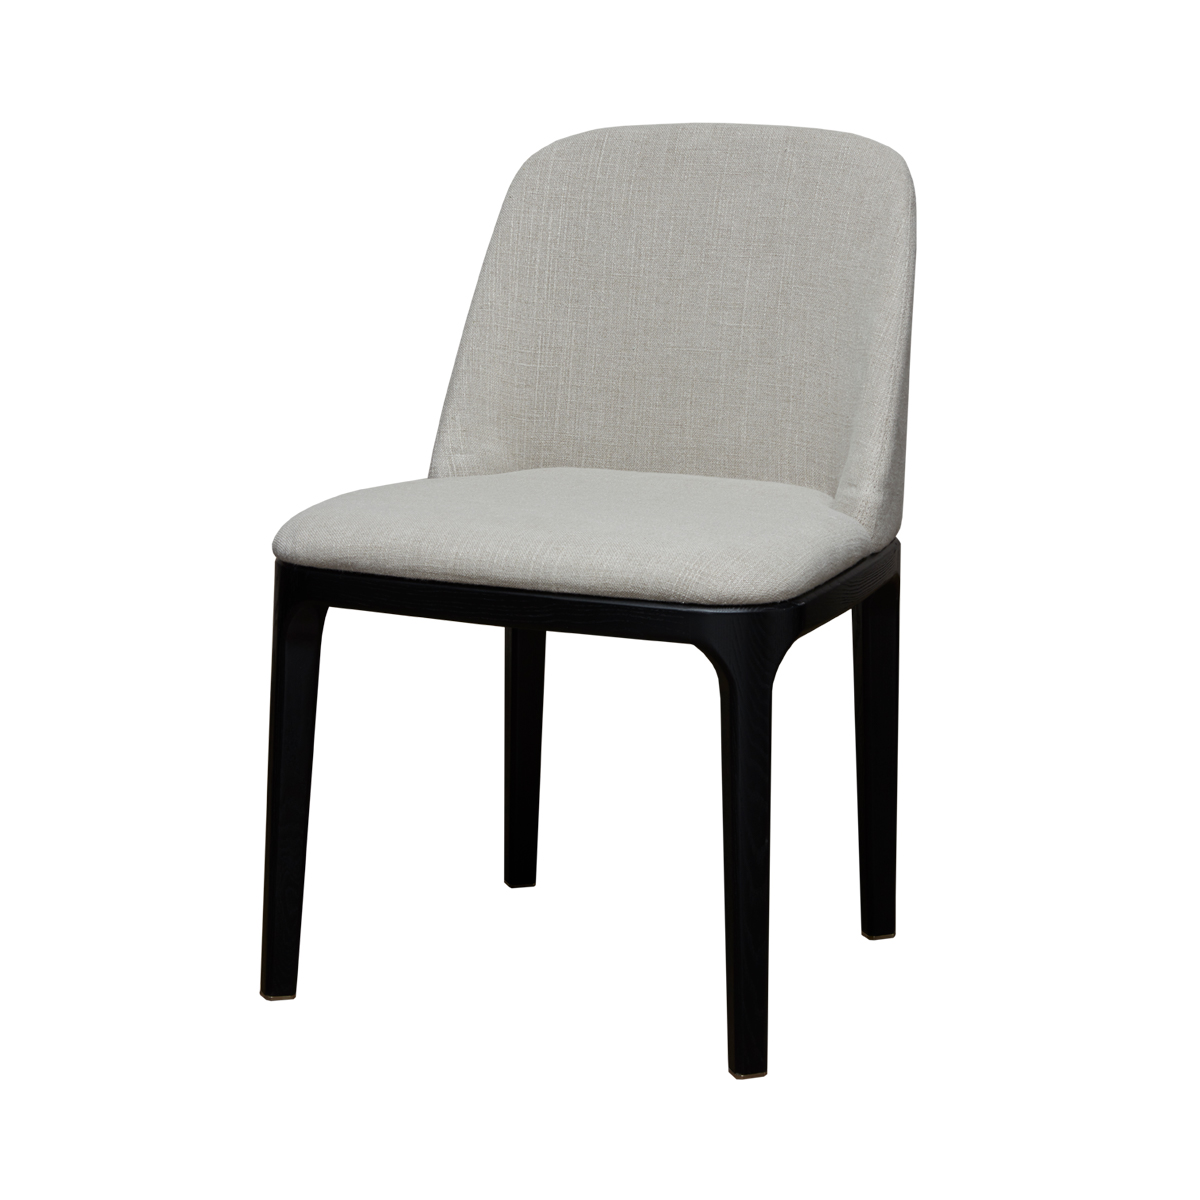 Gemma Dining Chair – Papyrus